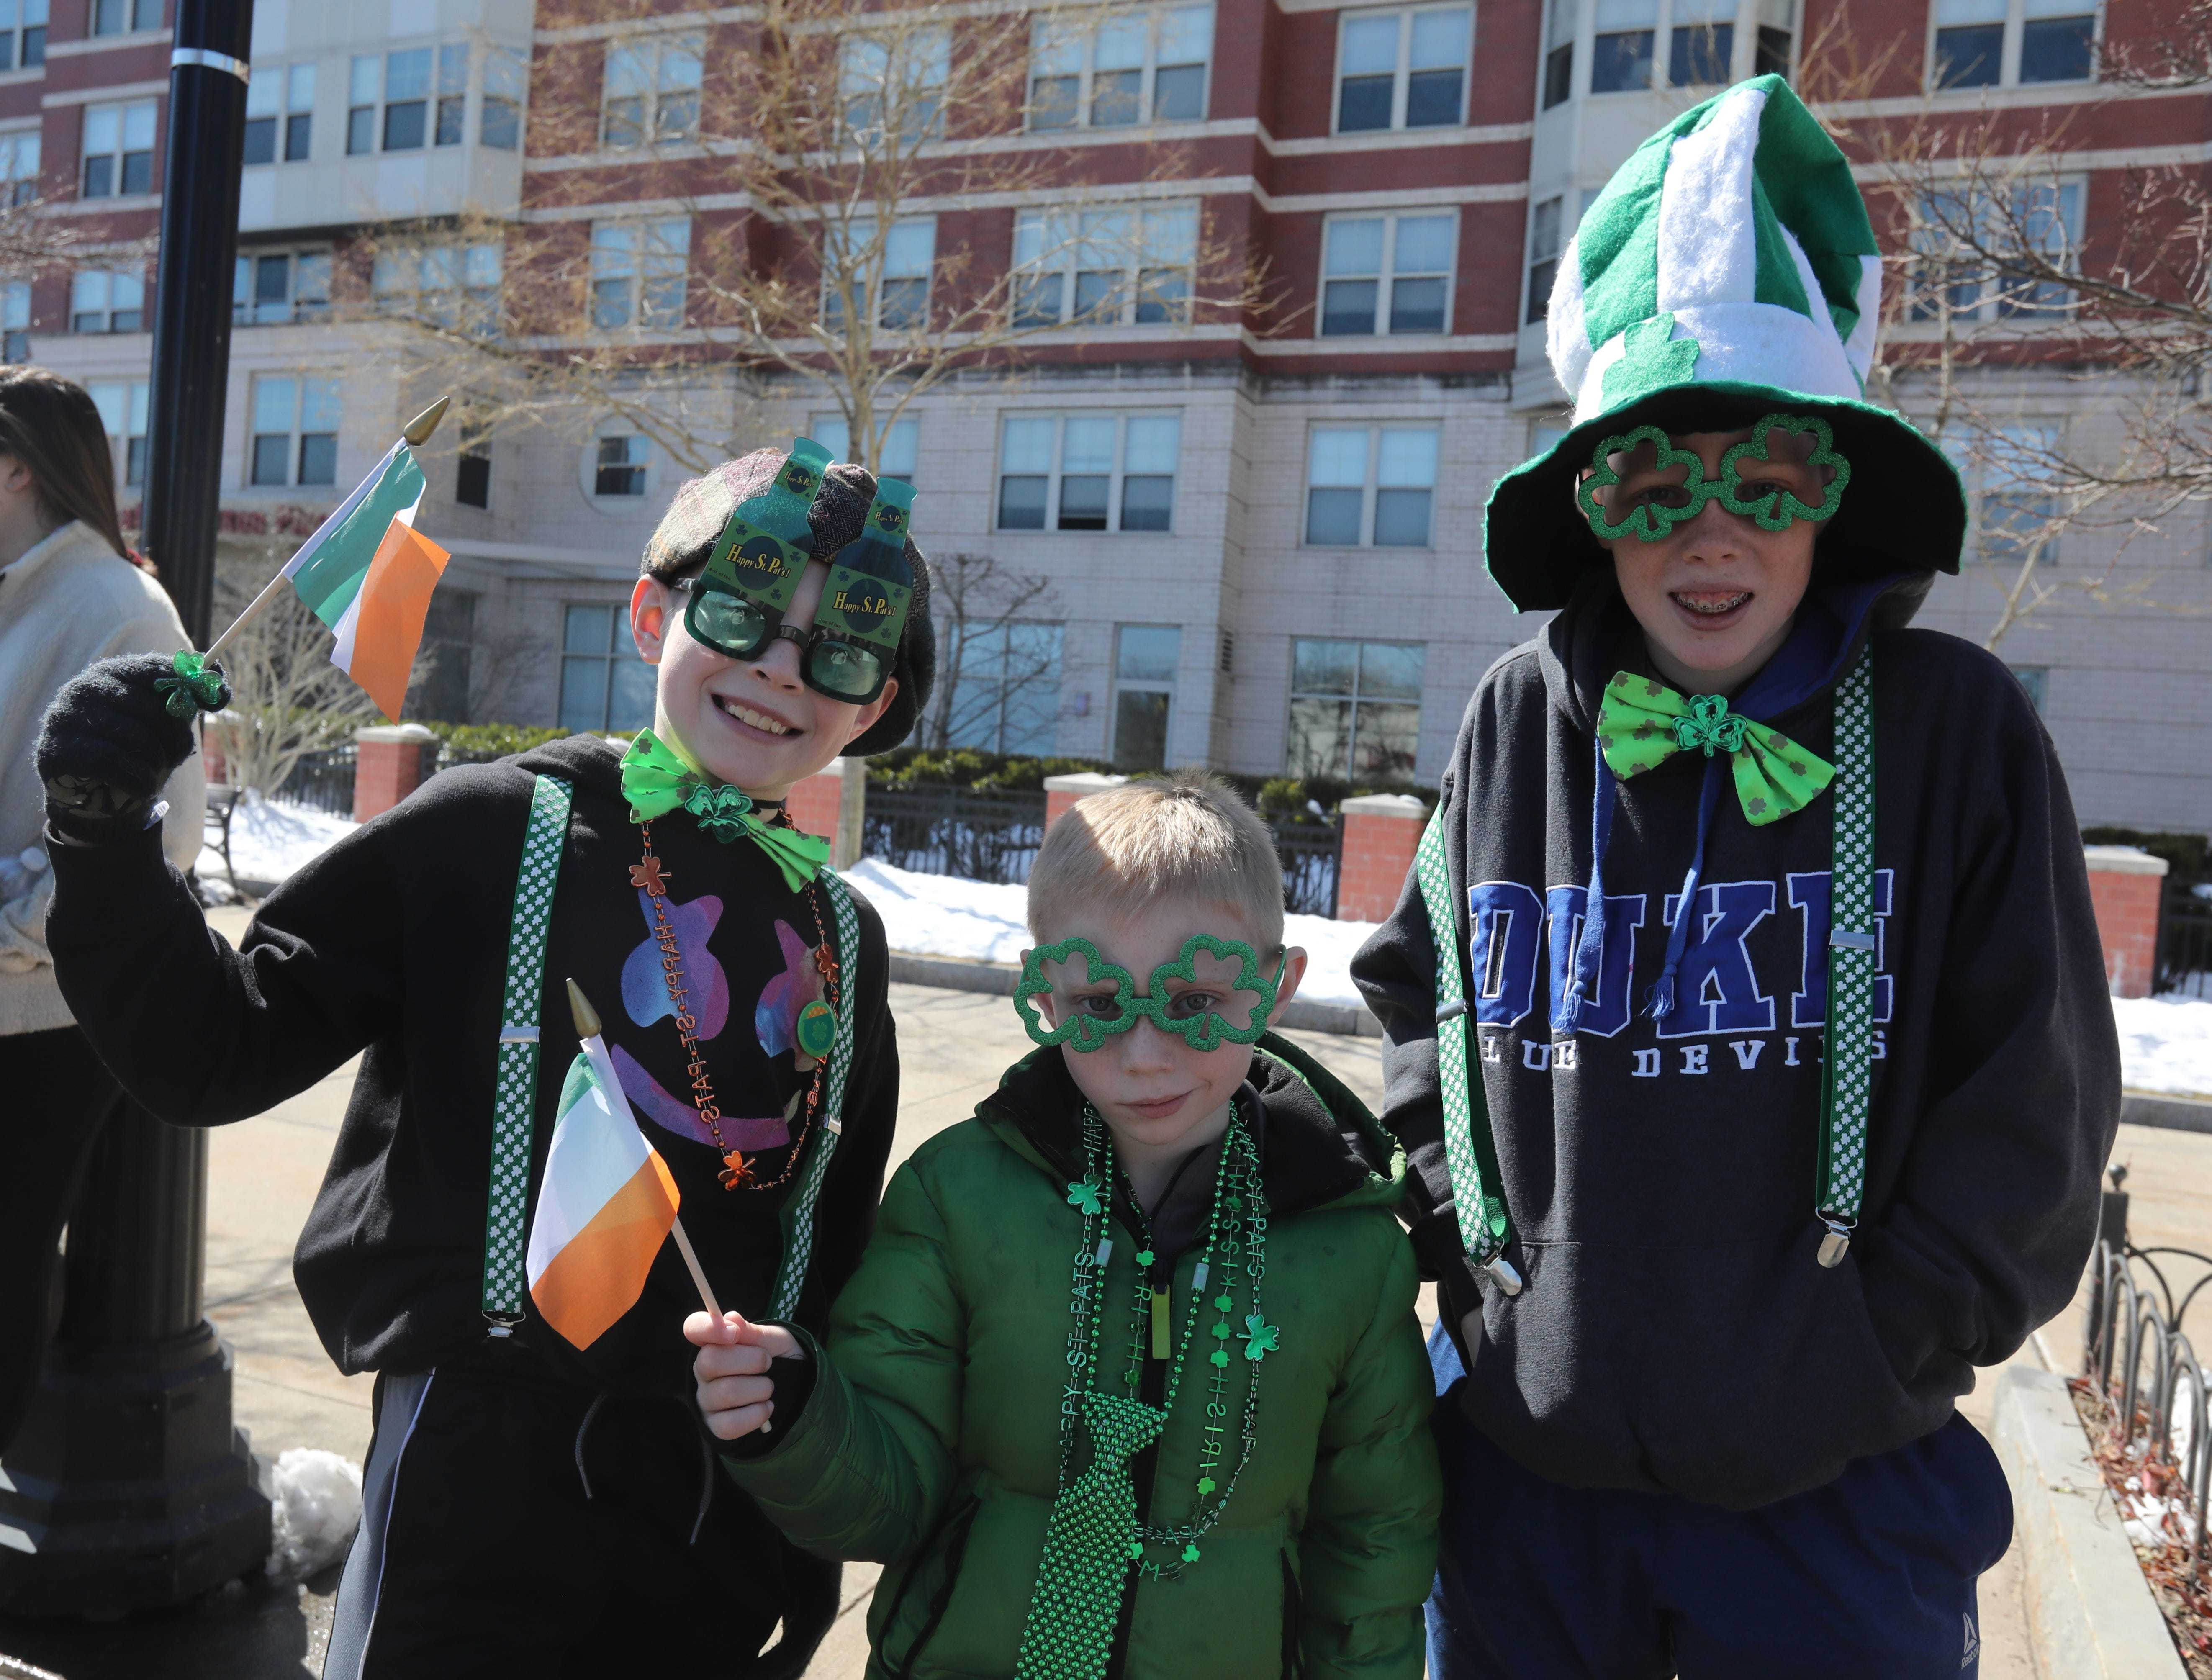 From left, brothers Devin Bierfeldt, 9, Ryan Bierfeldt, 6, and Connor Bierfeldt, 12, wait for the start of the 22nd annual White Plains St. Patrick's Day parade along Mamaroneck Avenue in White Plains March 9, 2019.